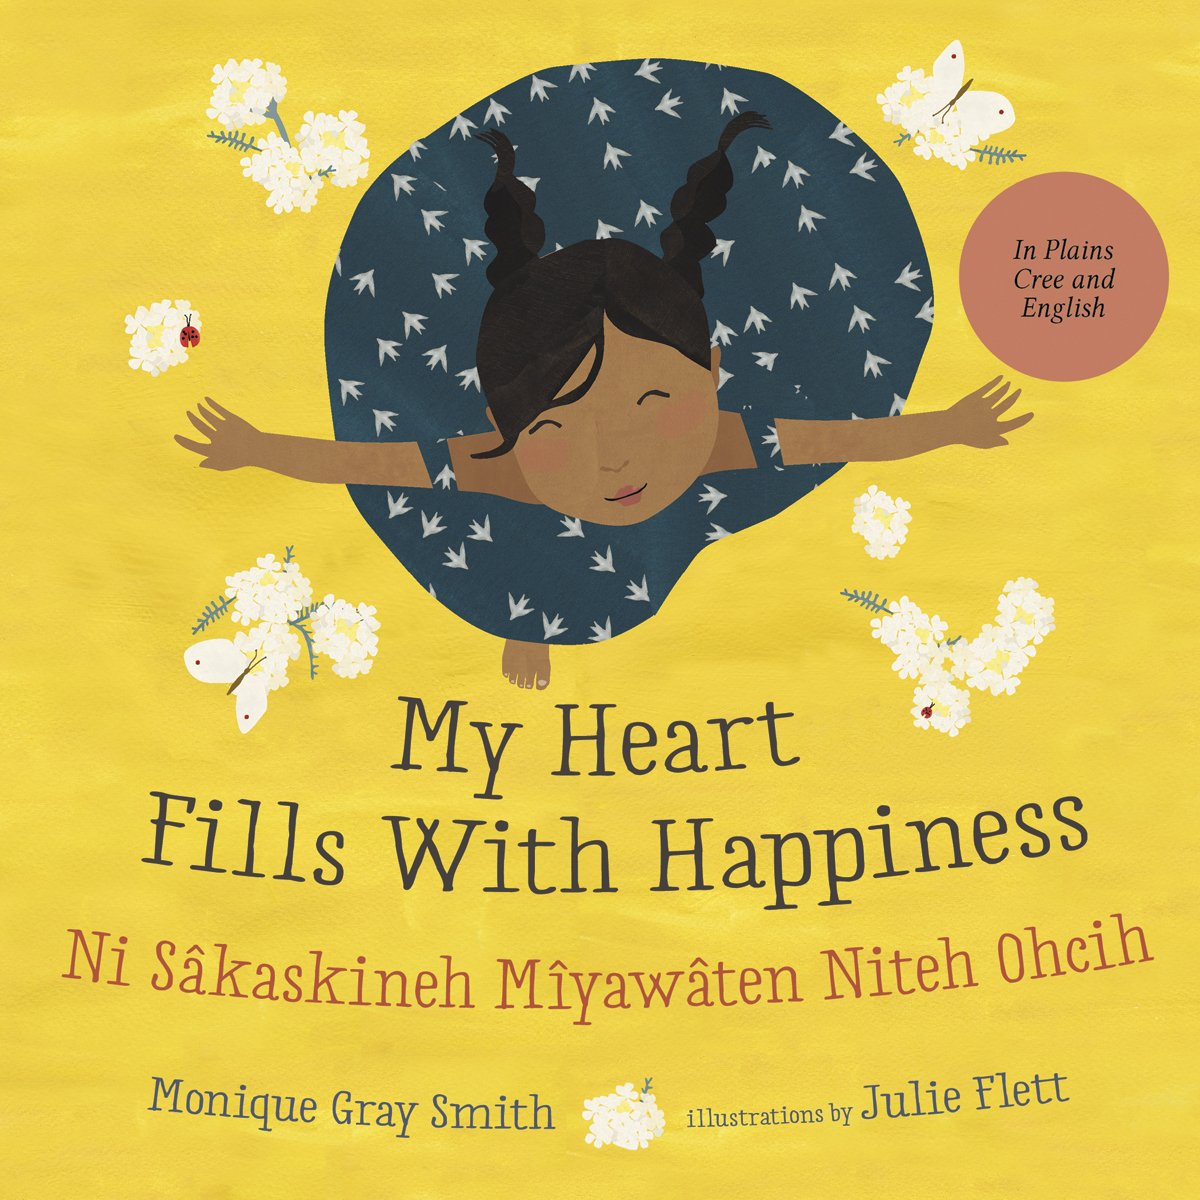 celebrate-picture-books-picture-book-review-my-heart-fills-with-happiness-plains-cree-edition